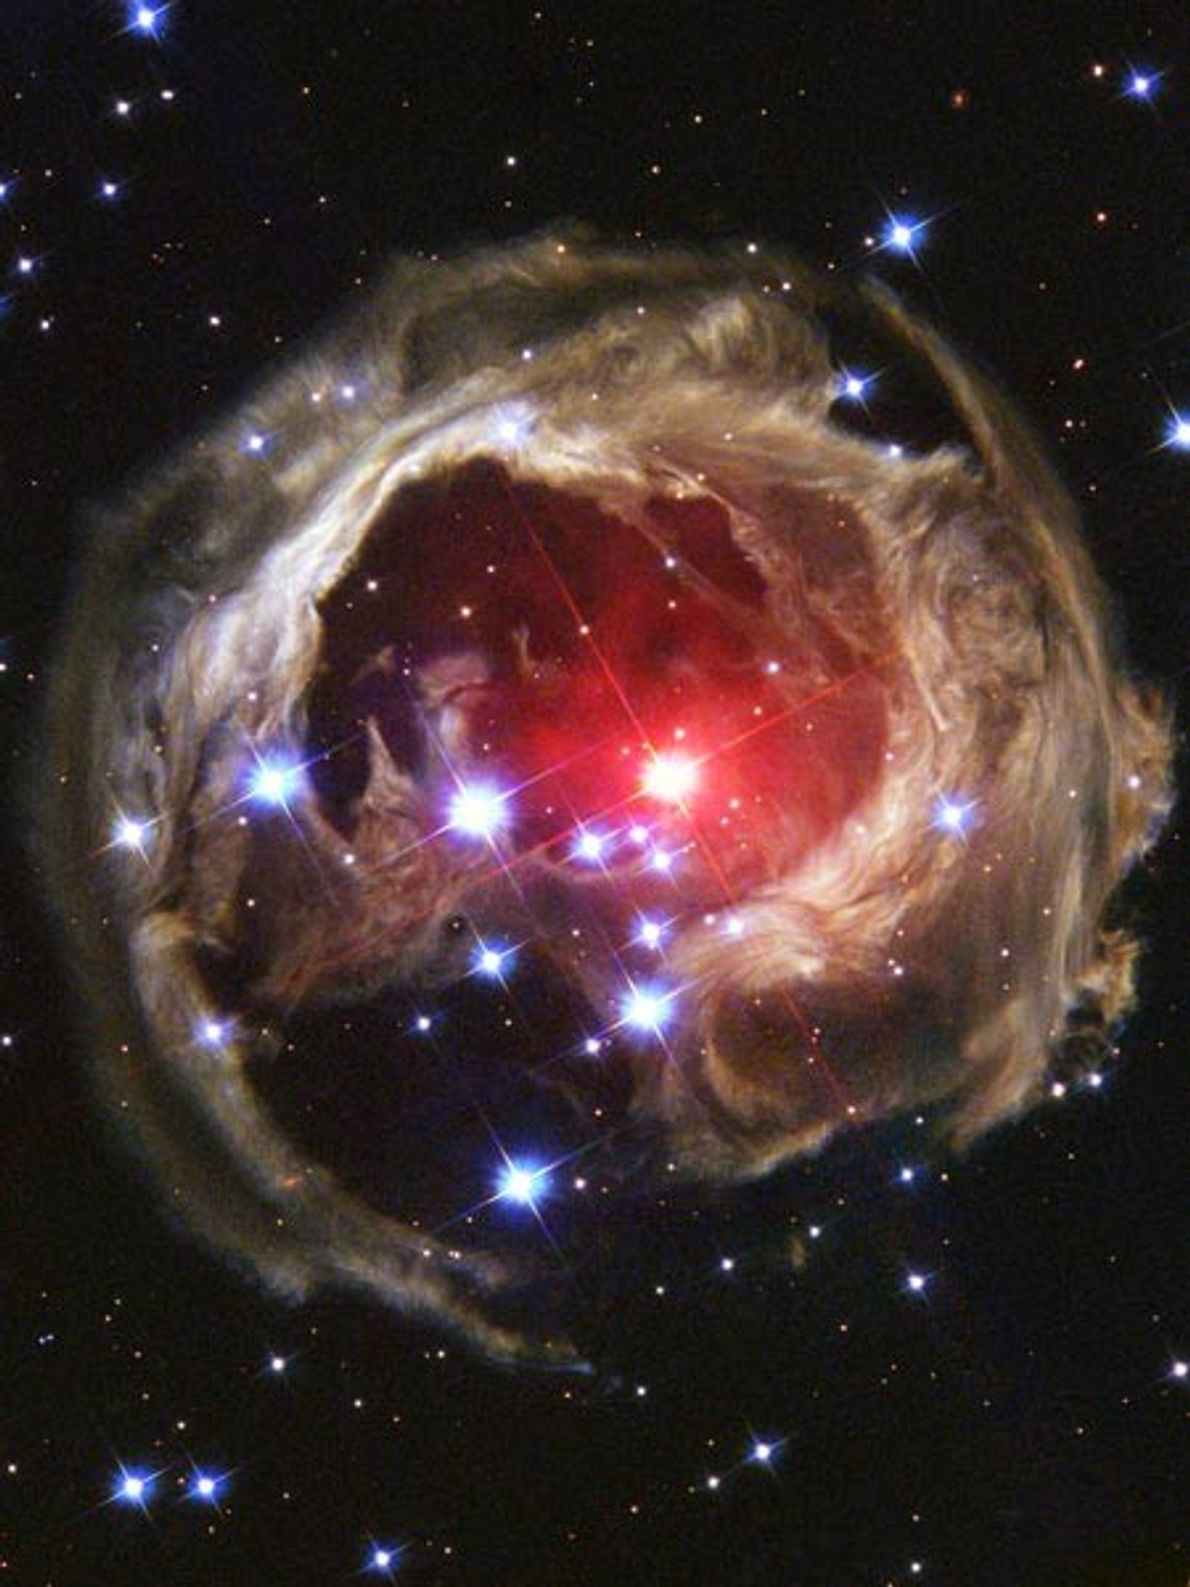 A pulse of light emitted in 2002 from a red supergiant star called V838 Monocerotis illuminates ...